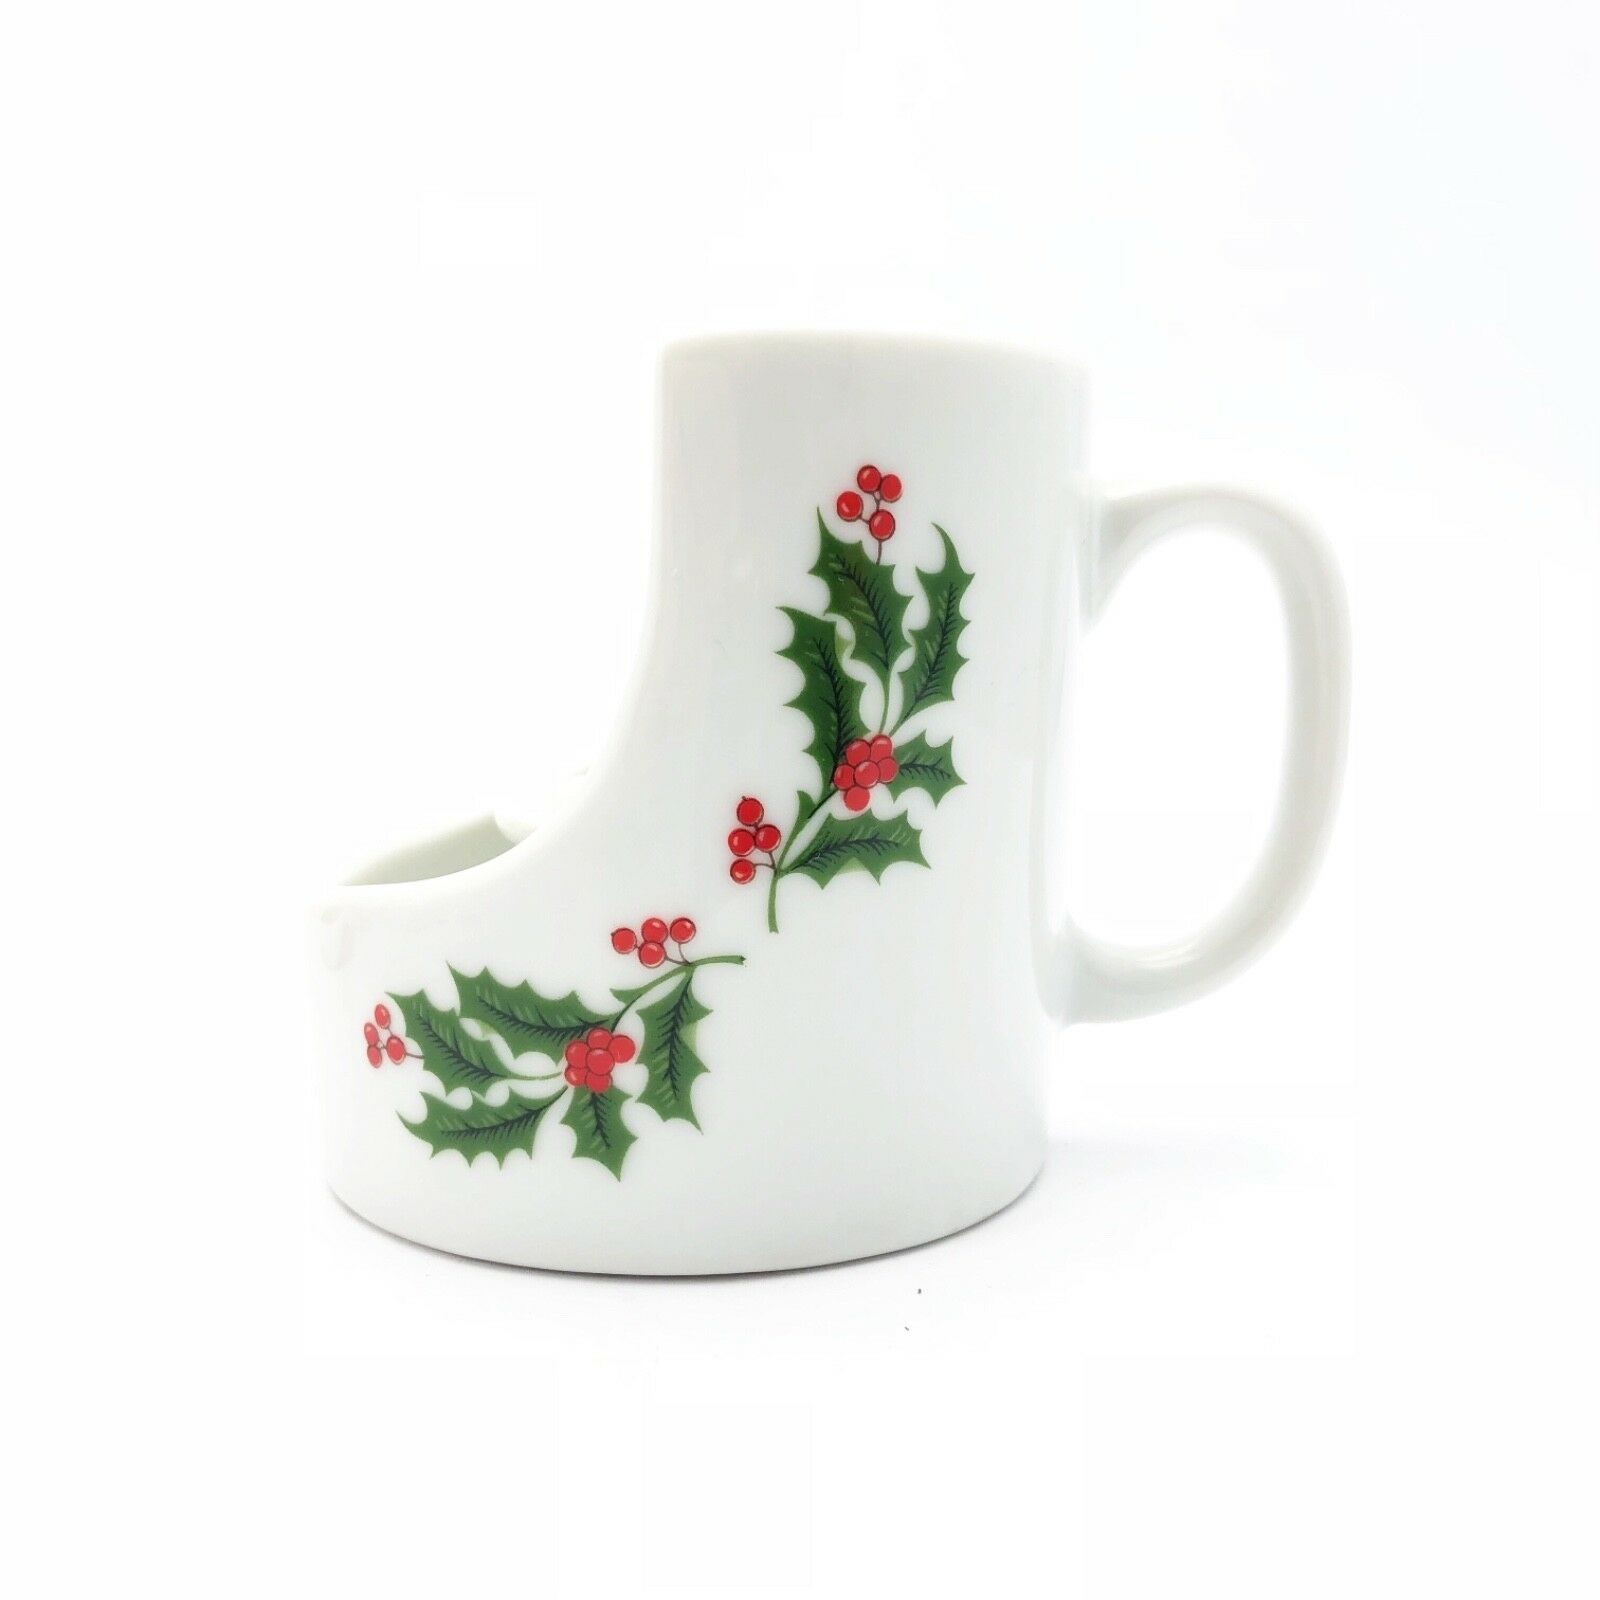 Vintage Taper Candle Holder Handle by Lenox Candles Christmas Holly Berries - $10.88